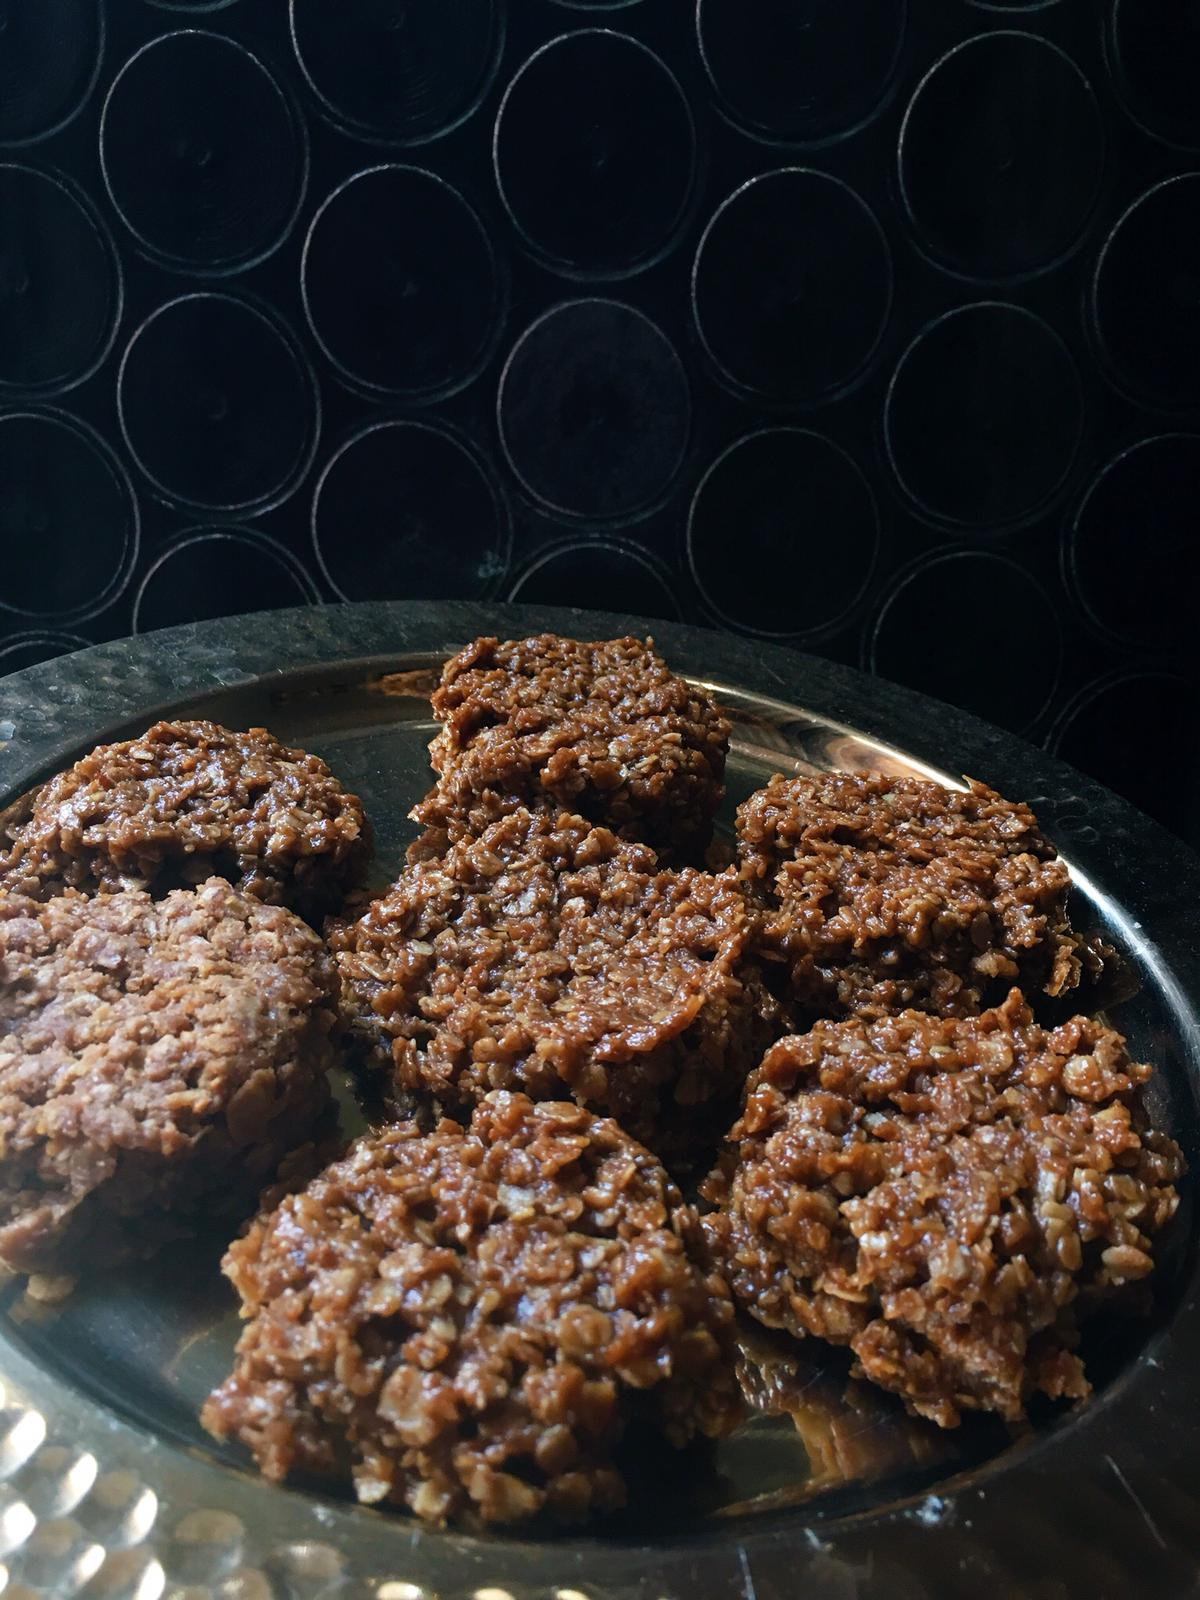 These no bake cookies are perfect for summer! They are gluten and dairy free. Using raw sugar will make them vegan, too!